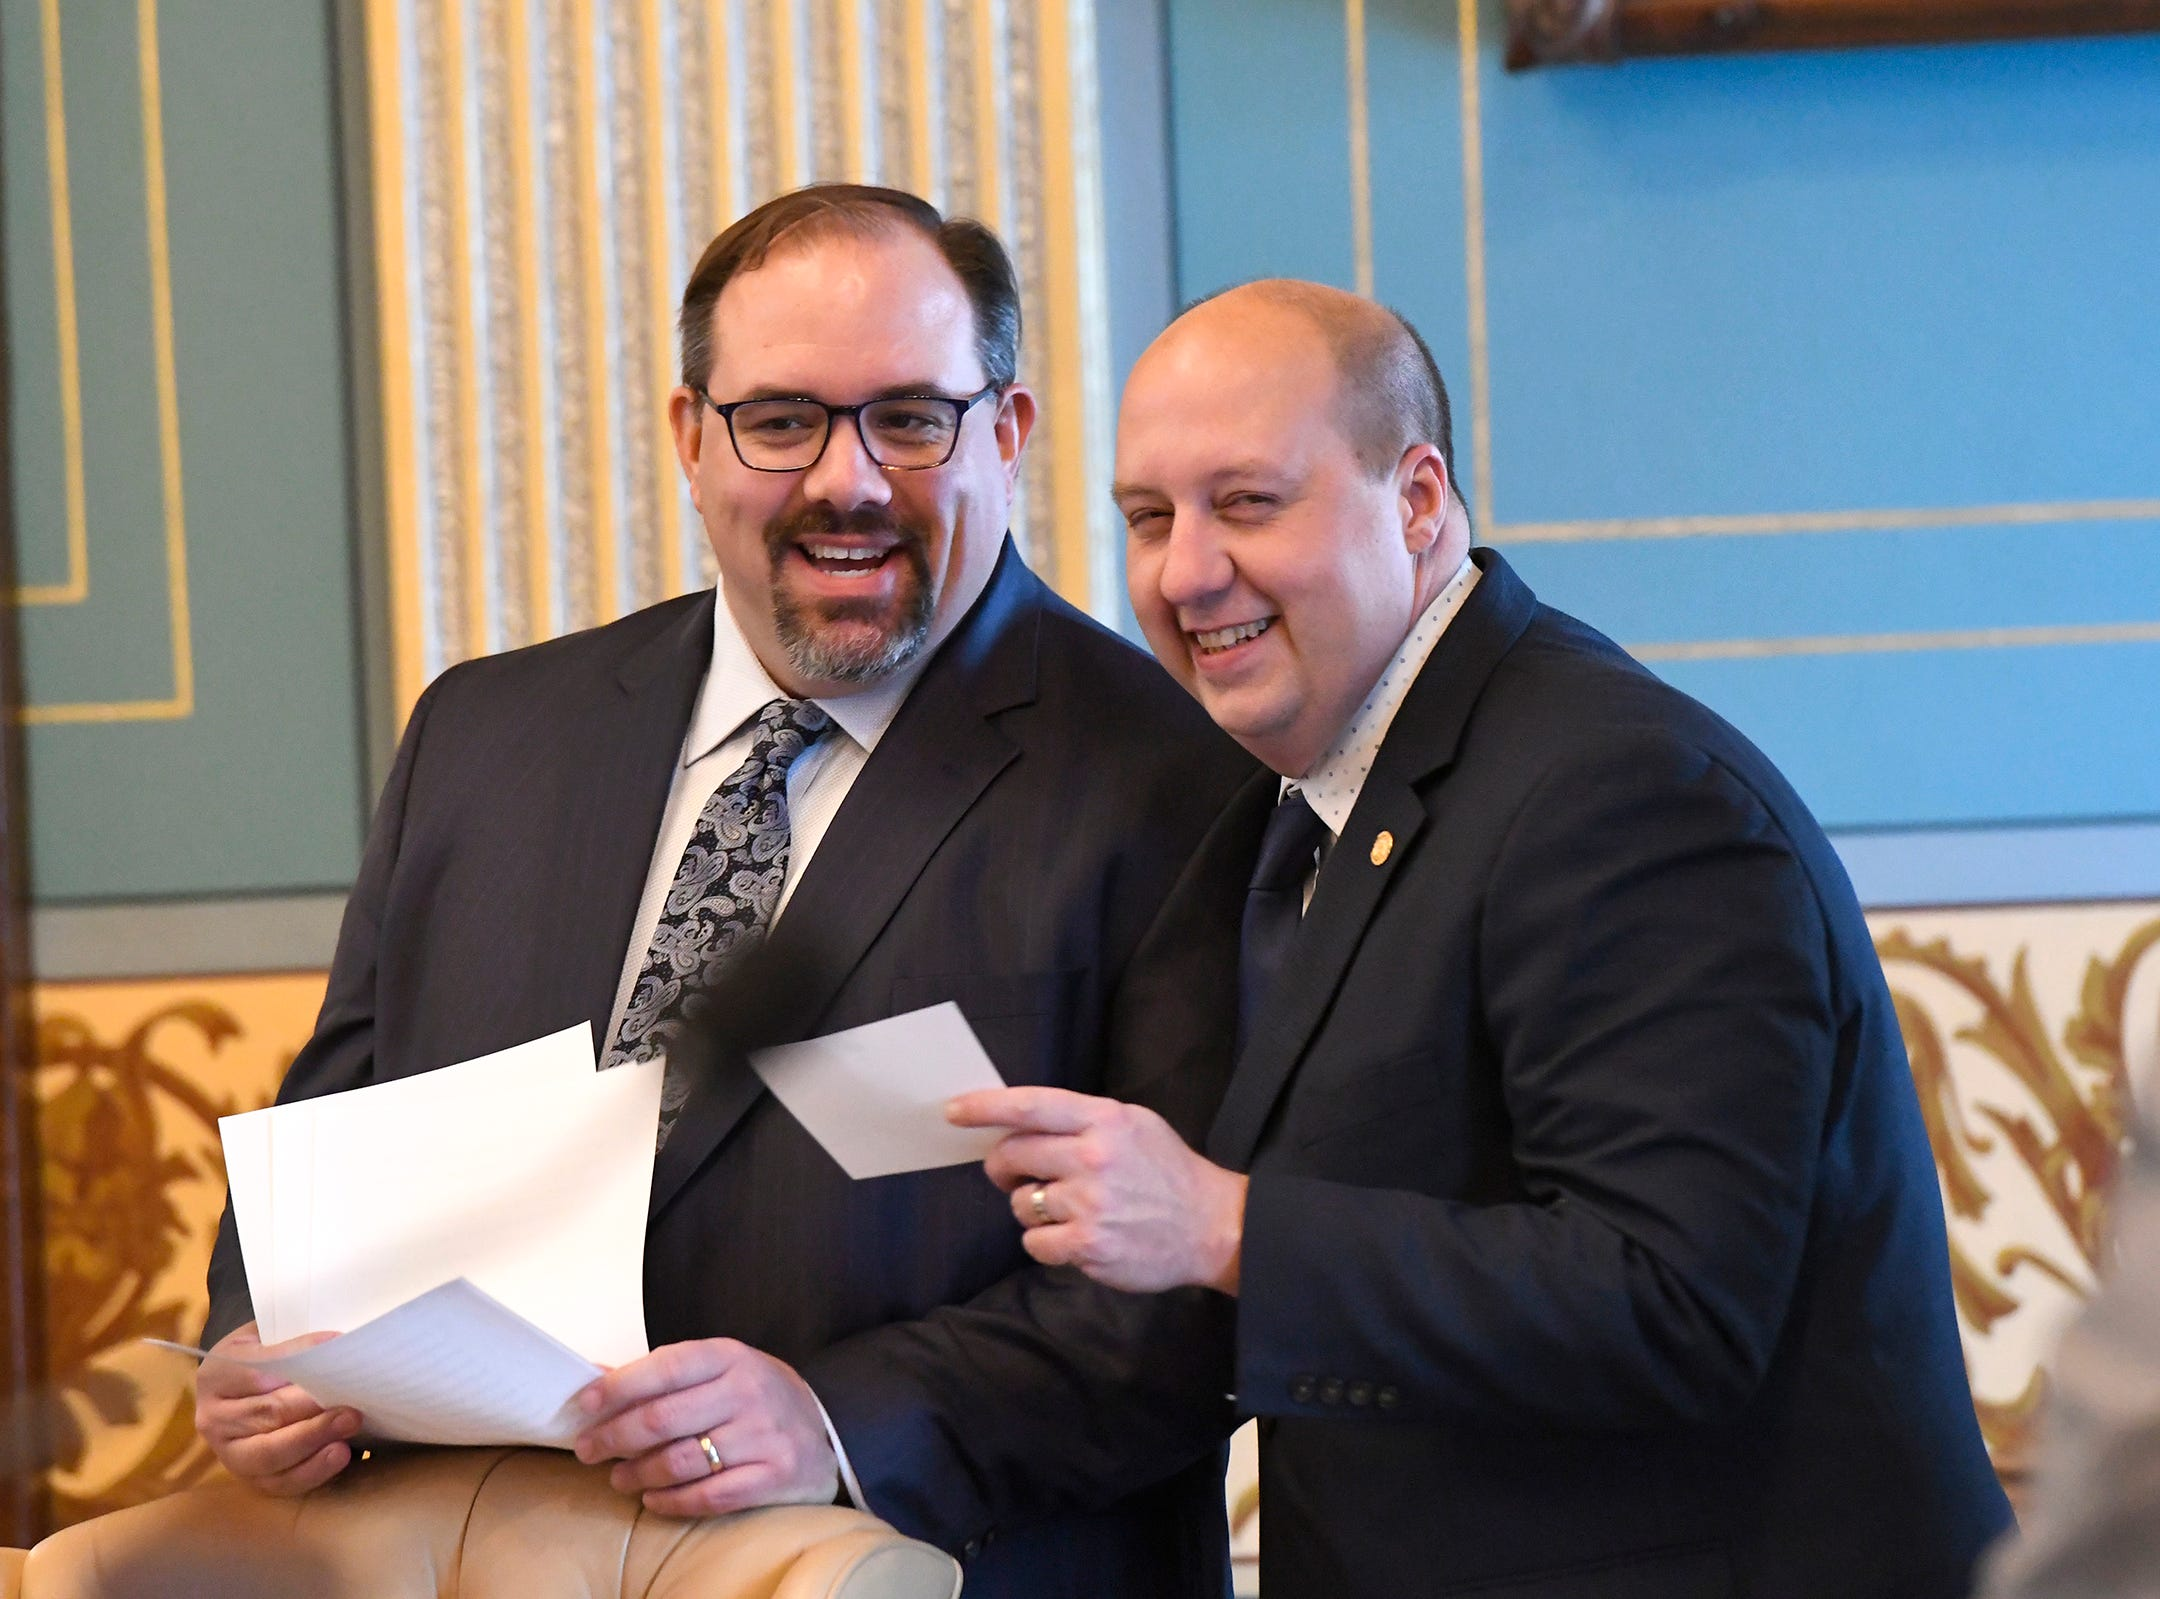 Senate Minority Leader Jim Ananich, left, shares a laugh with Sen. Curtis Hertel, D-District 23, right, before swearing in ceremonies.